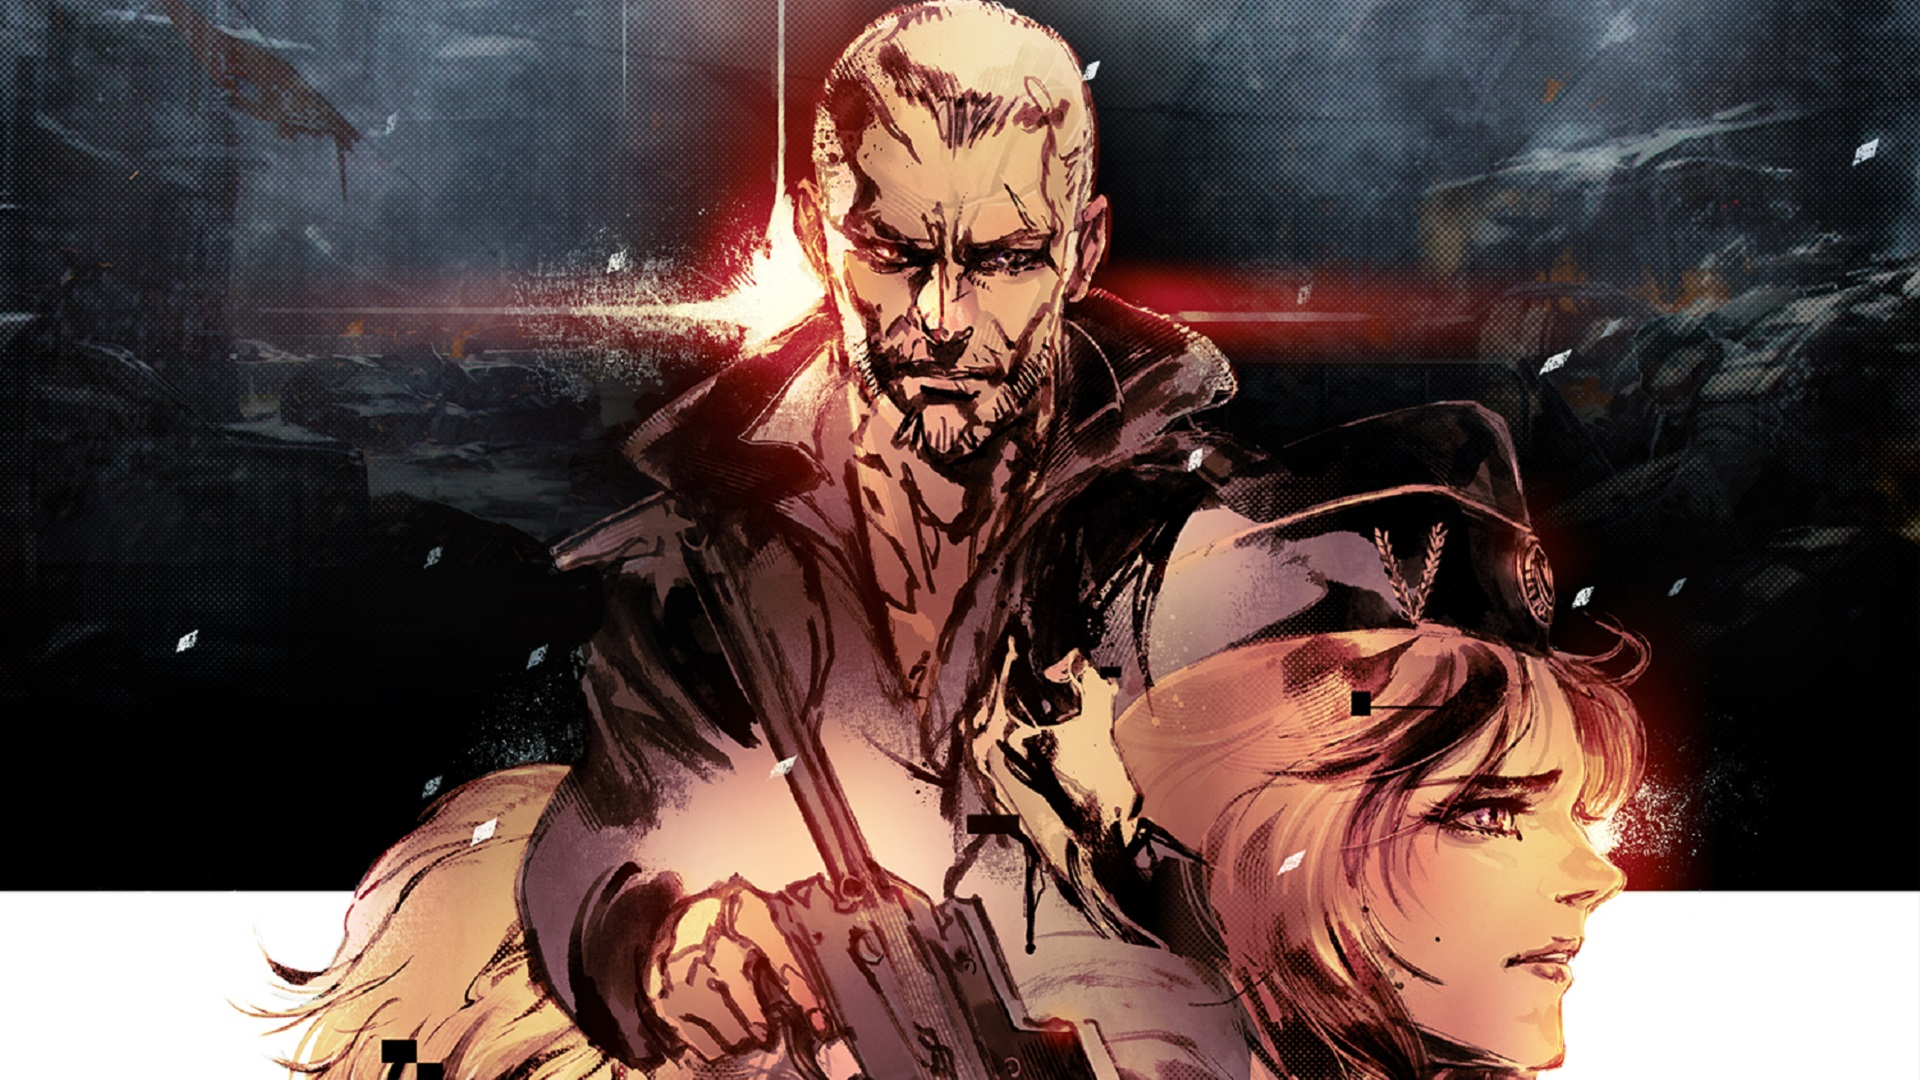 square-enix-reveals-survival-action-shooter-from-metal-gear-solid-character-artist-called-left-alive-social.jpg